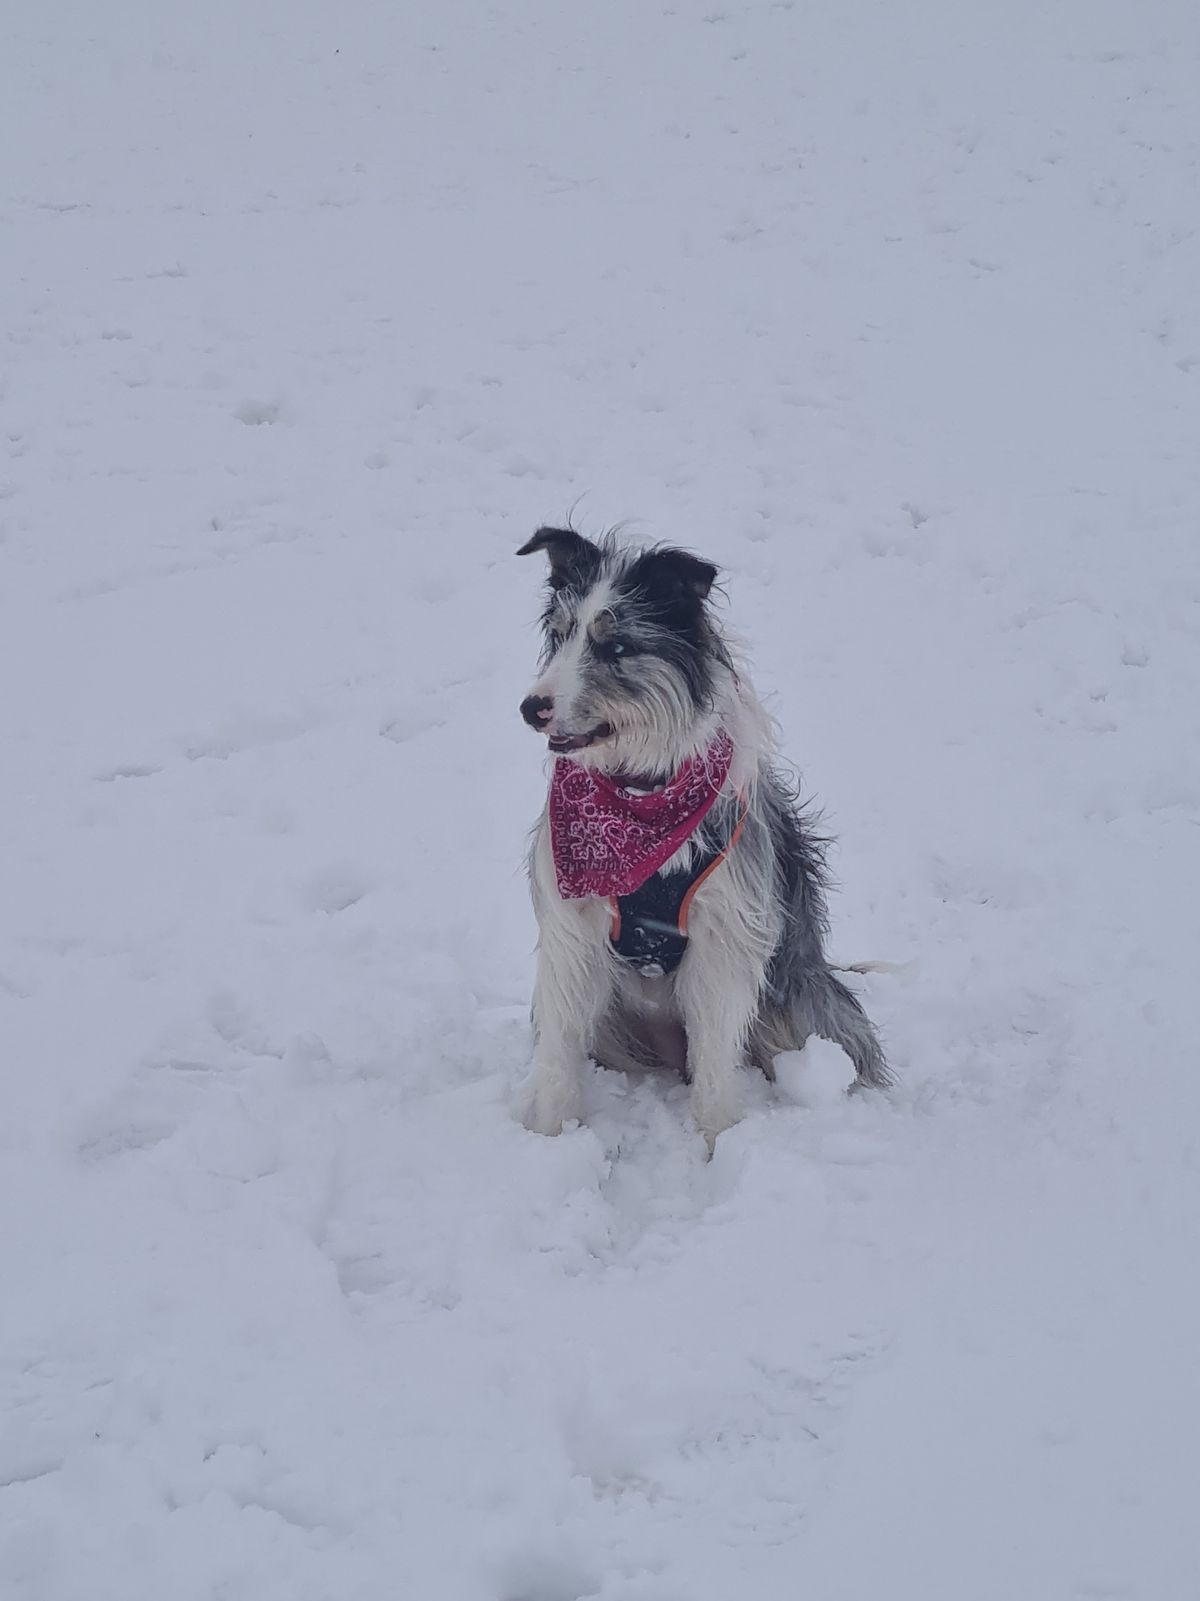 Winter the dog's first experience of snow, in Gornal. Photo: Stevianne Baines.